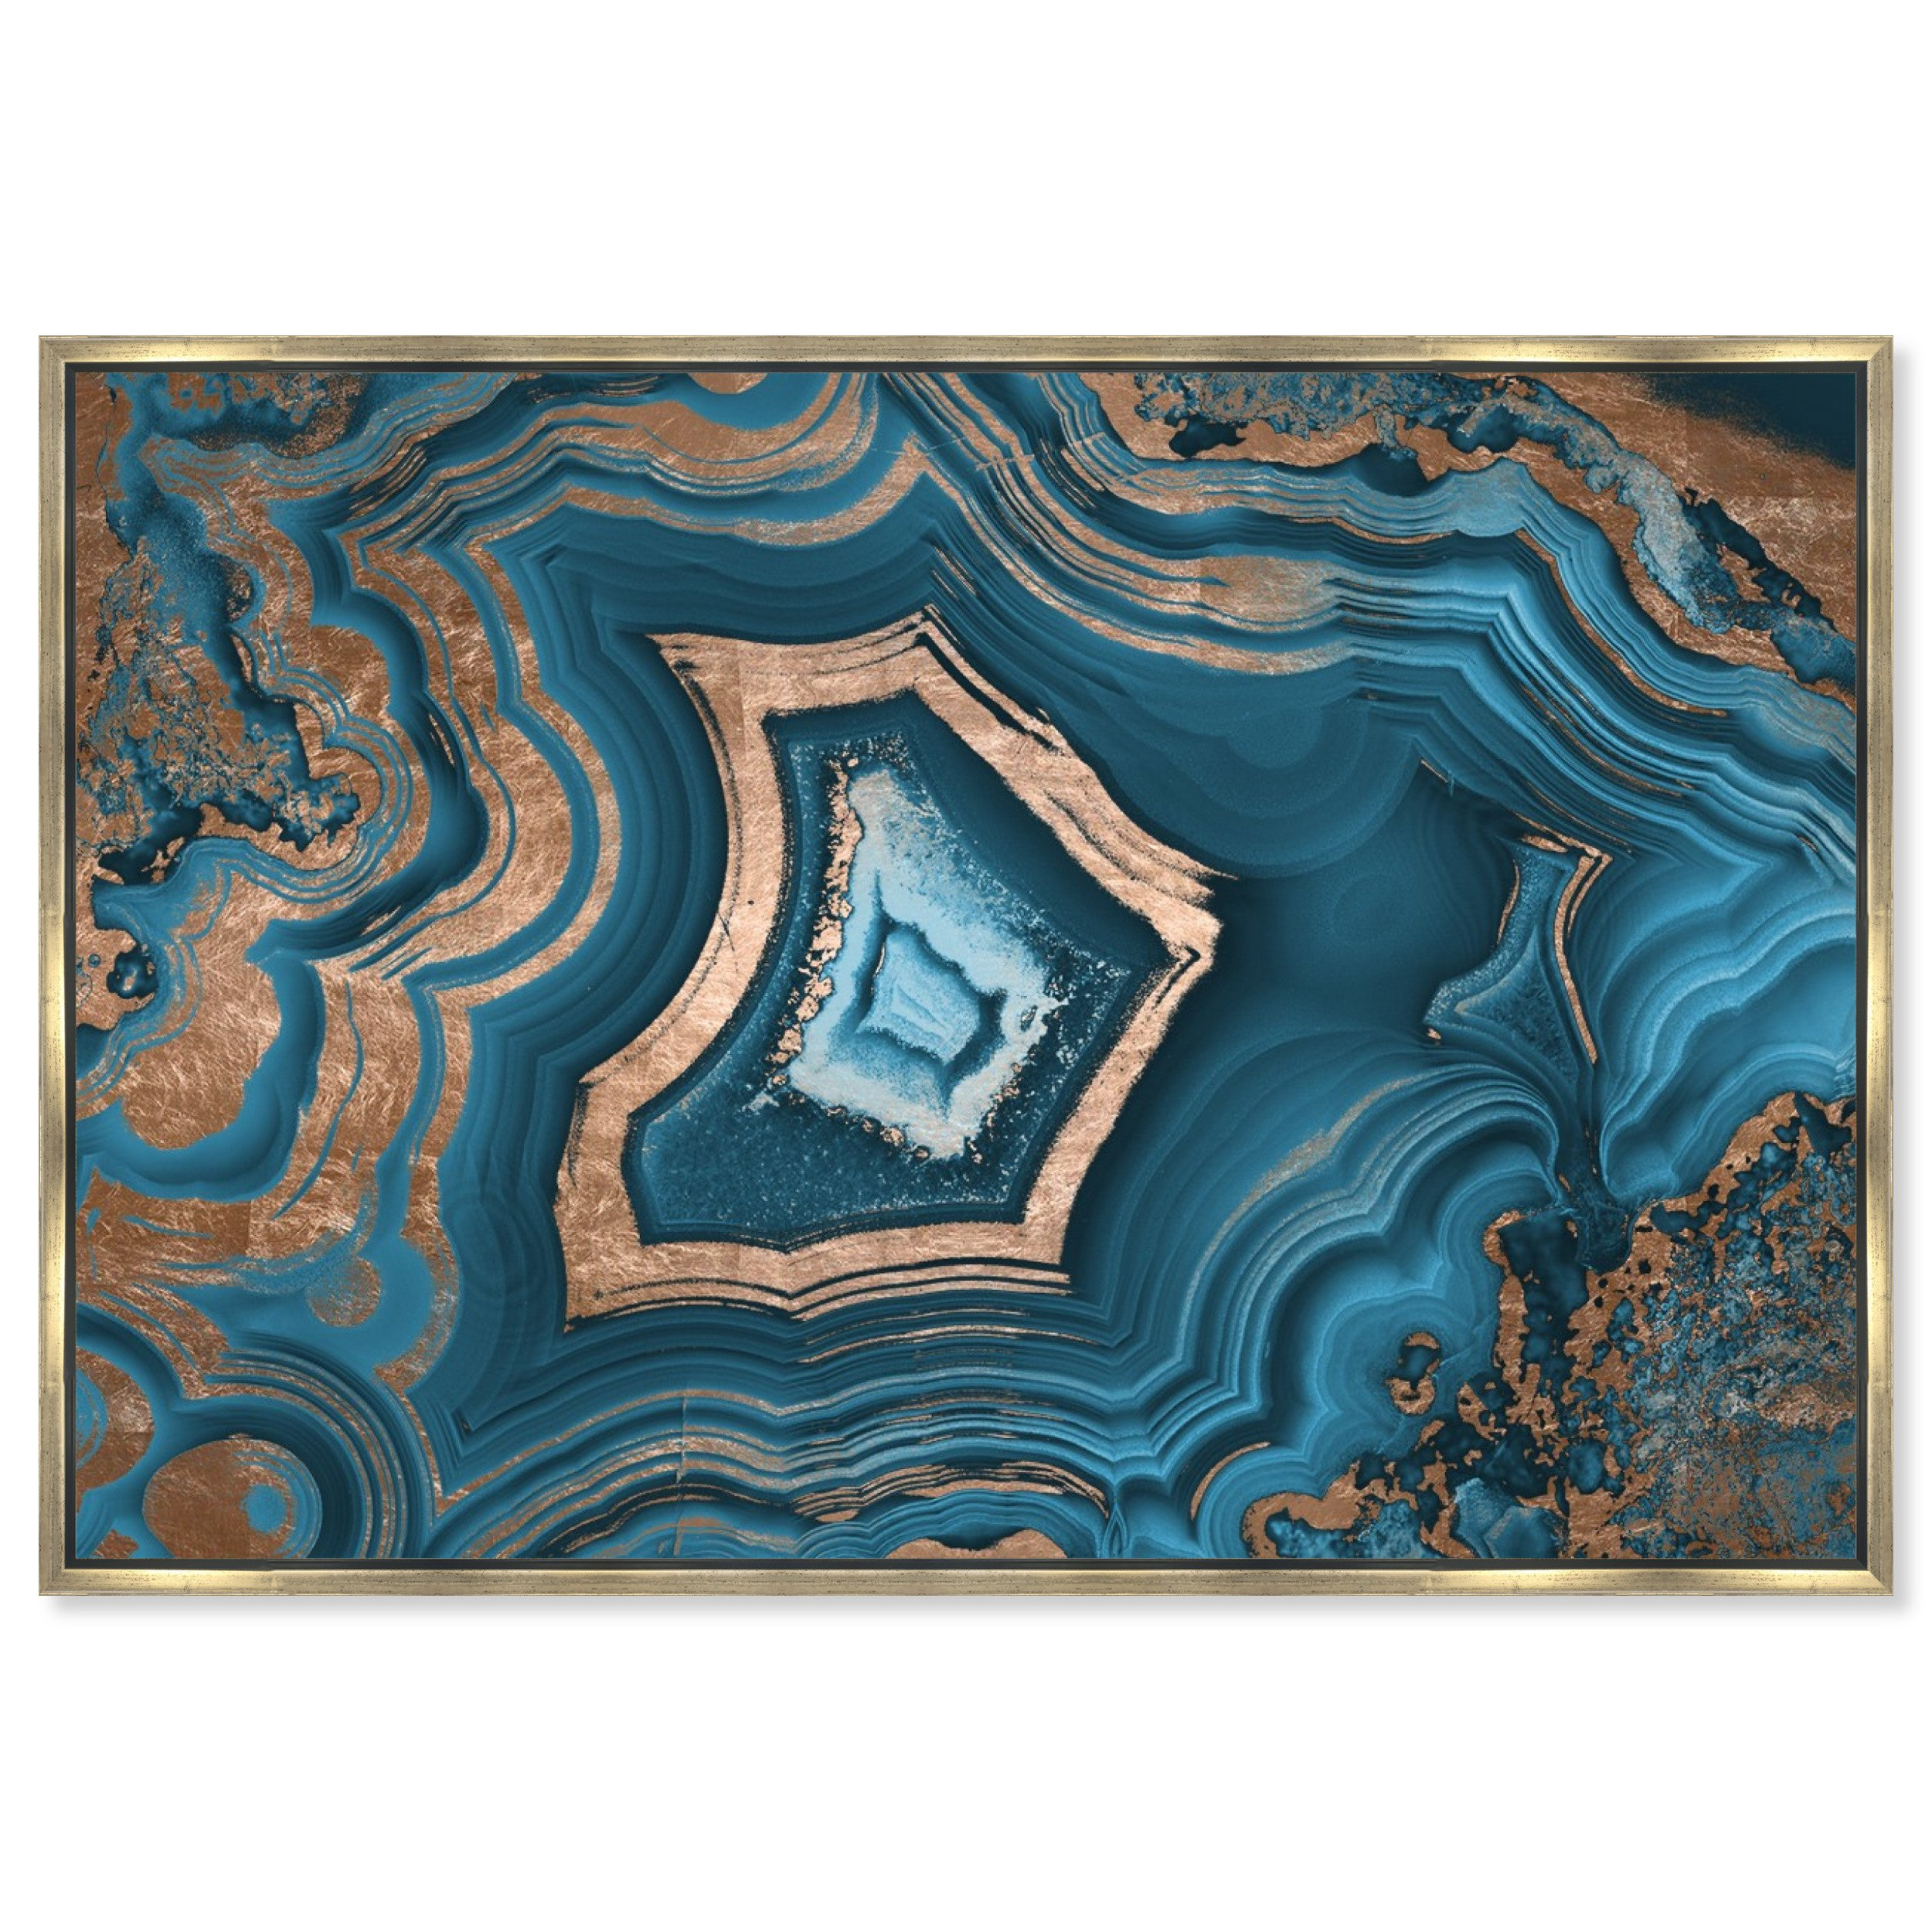 The Oliver Gal Artist Co. Dreaming about You Geode Framed Abstract Wall Art, 60'' x 40'', Blue by The Oliver Gal Artist Co.